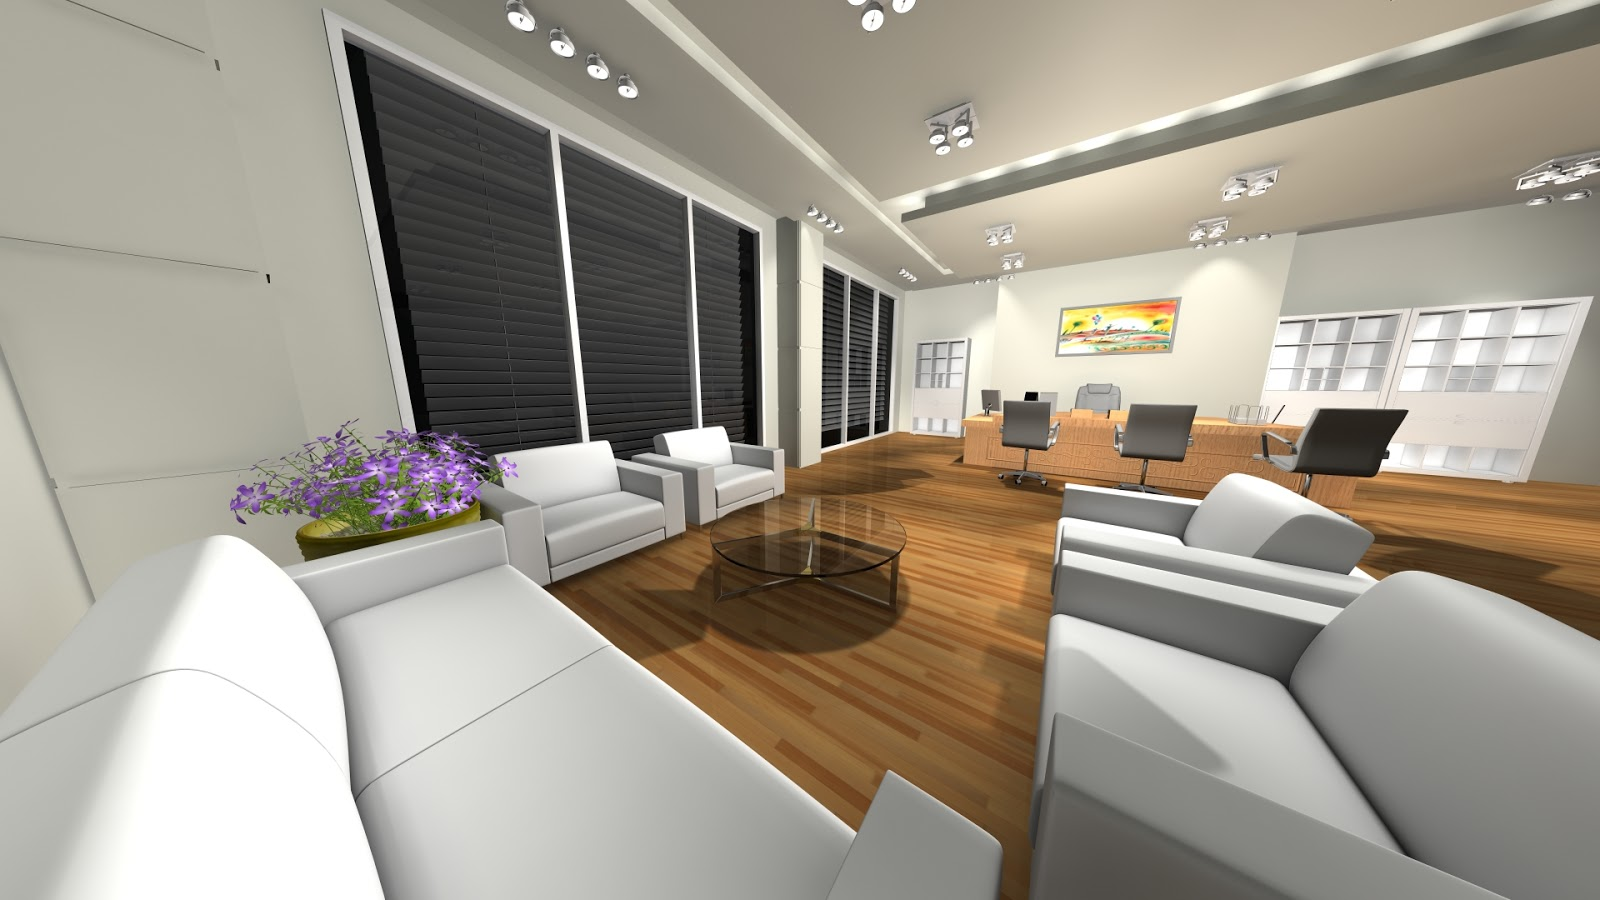 Sajid designer office room 3d interior design 3ds max Office design 3d